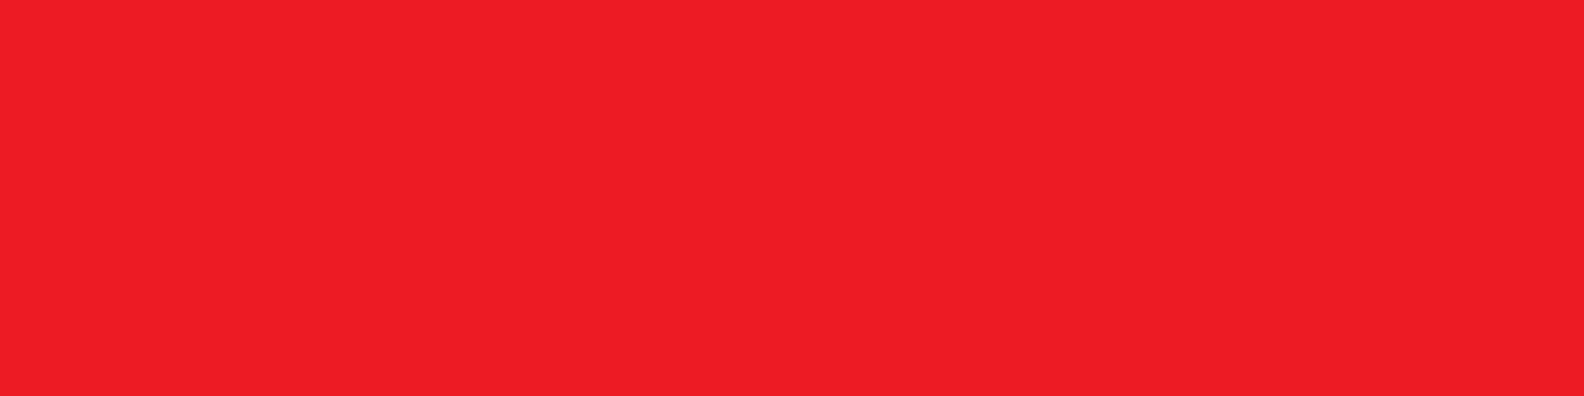 1584x396 Red Pigment Solid Color Background